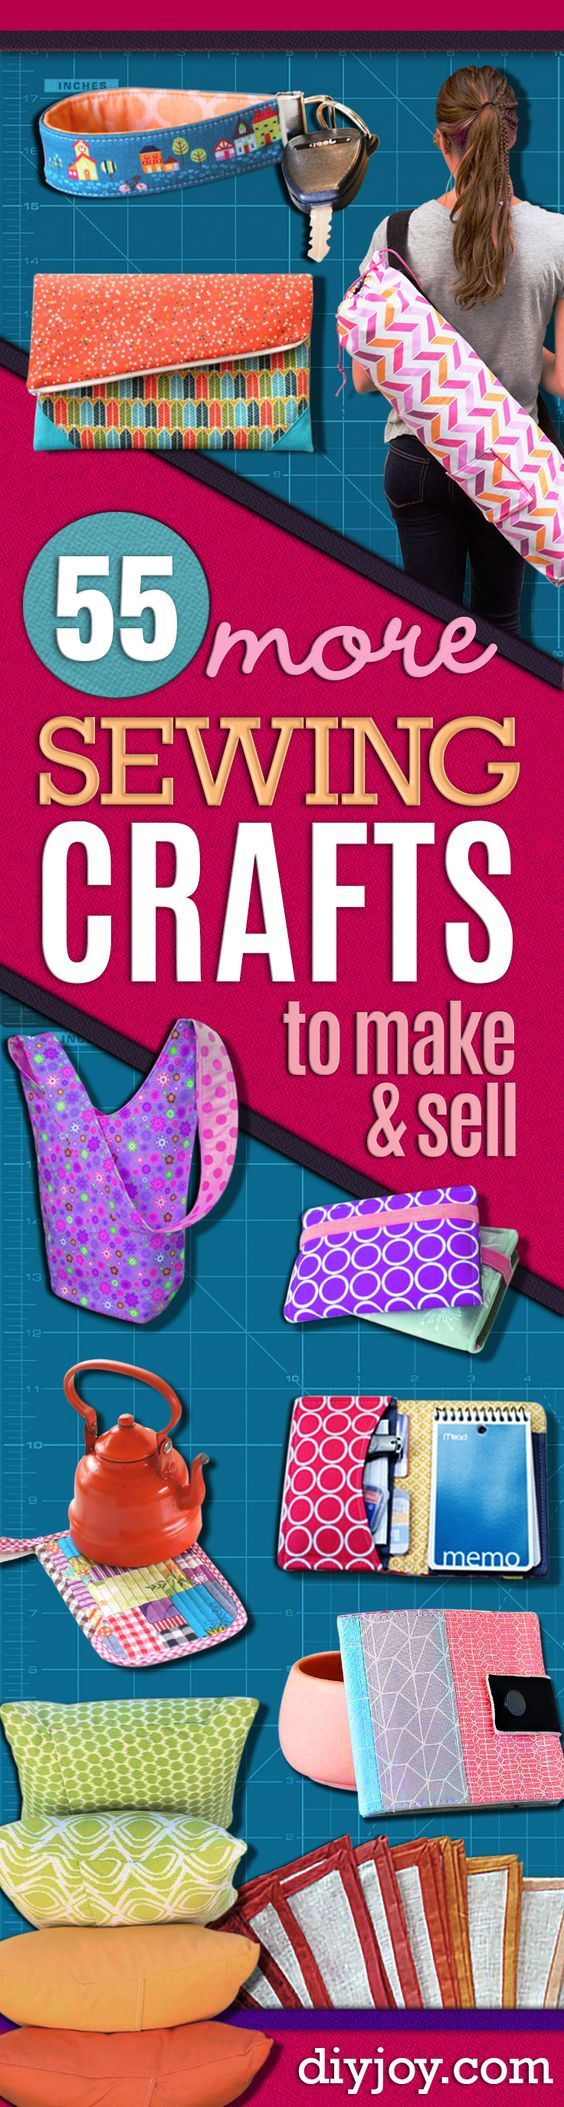 55 more sewing crafts to make and sell craft business ForCraft Businesses That Make Money